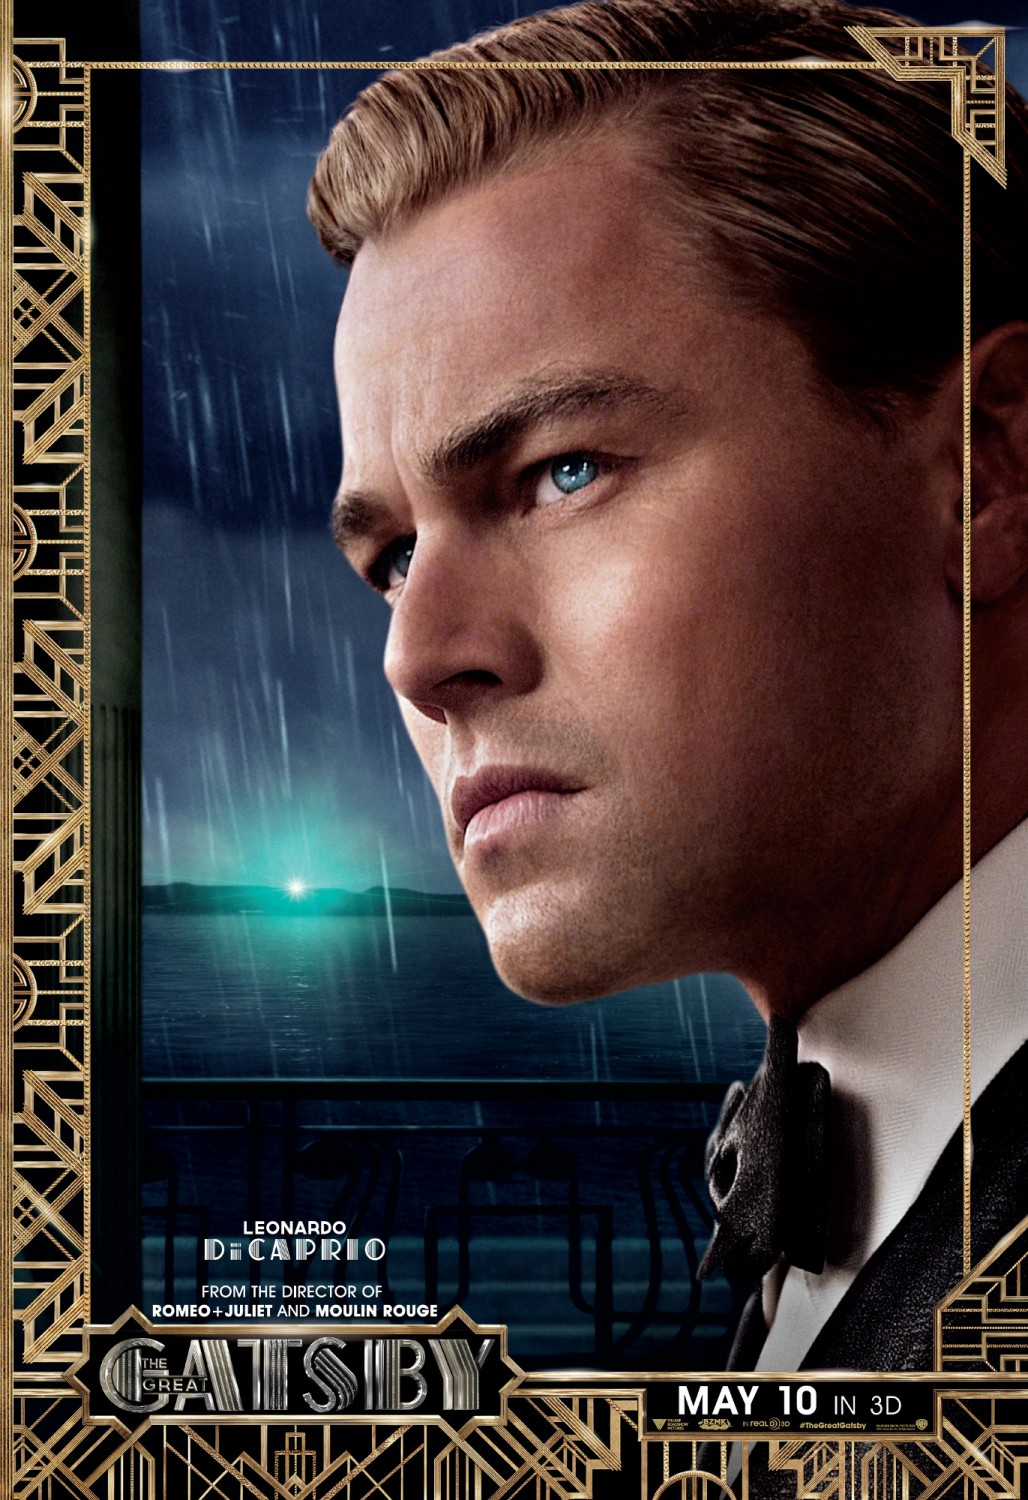 many faces of jay gatsby The great gatsby is probably number 1 on many author's lists of work that gave them inspiration, especially as it was recently made into a great film directed by one of my favourite film directors, baz luhrmann and starring leonardo dicaprio.